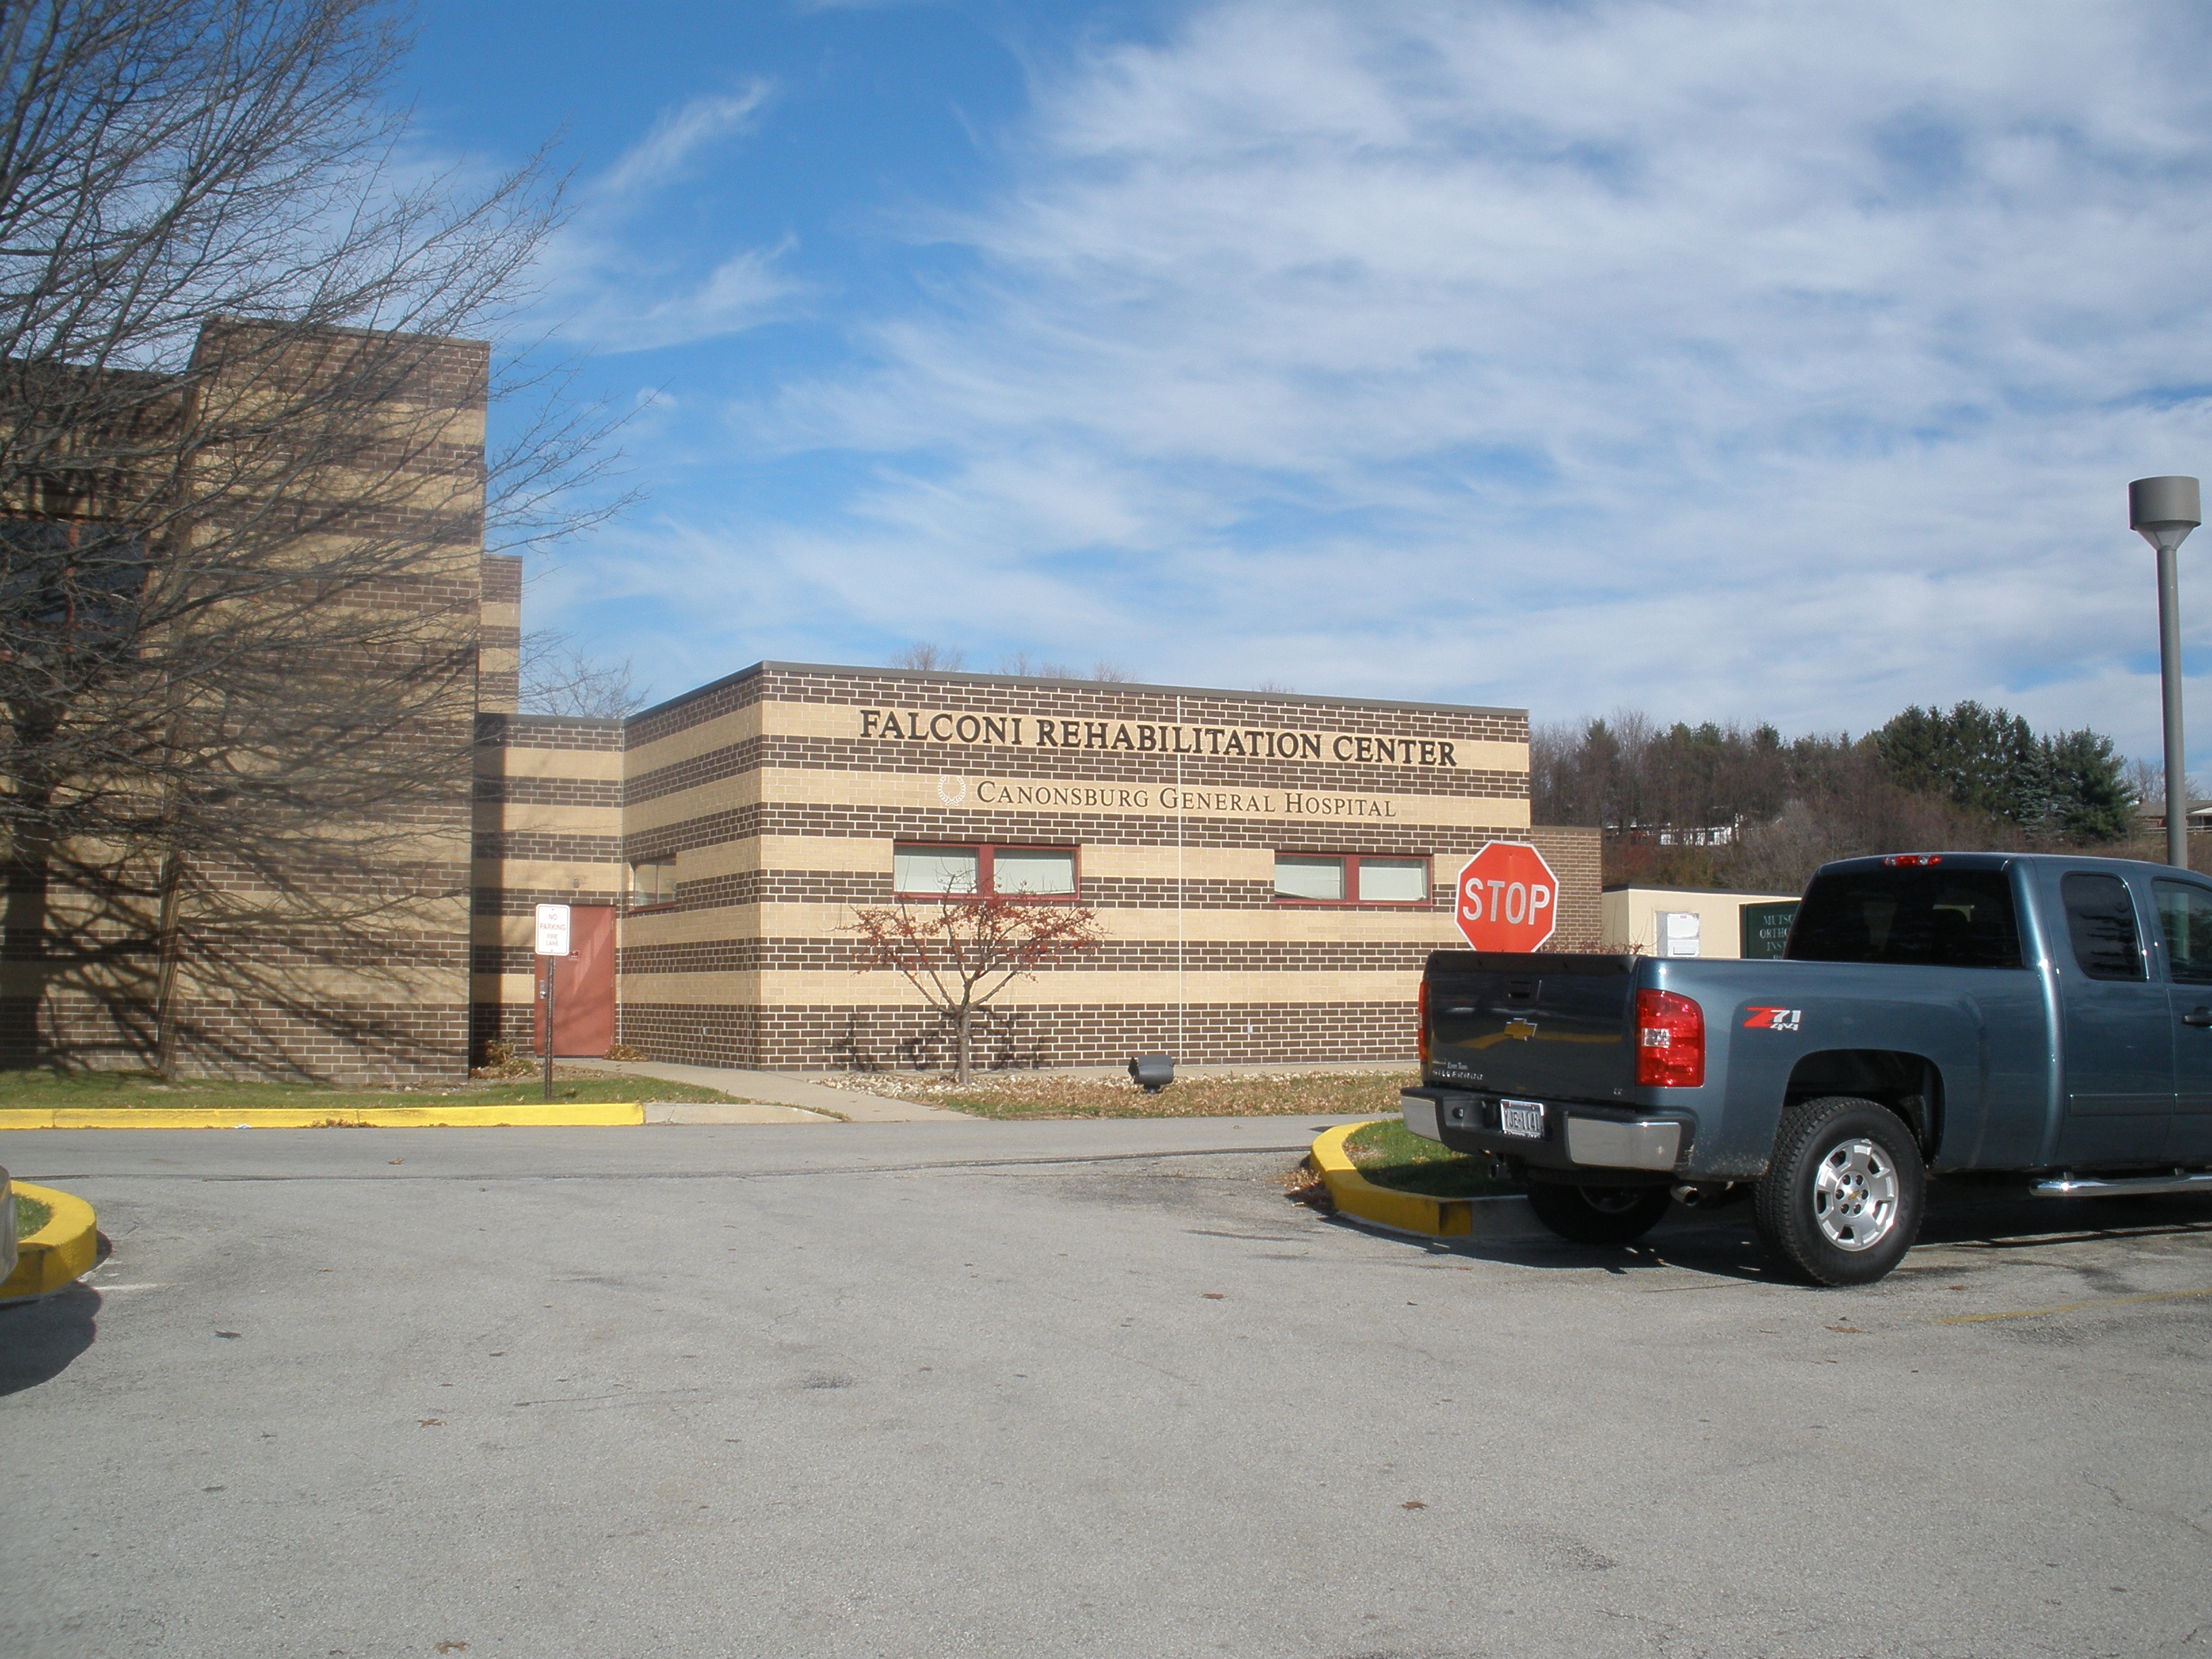 West Penn Allegheny Health System Named One of Nations